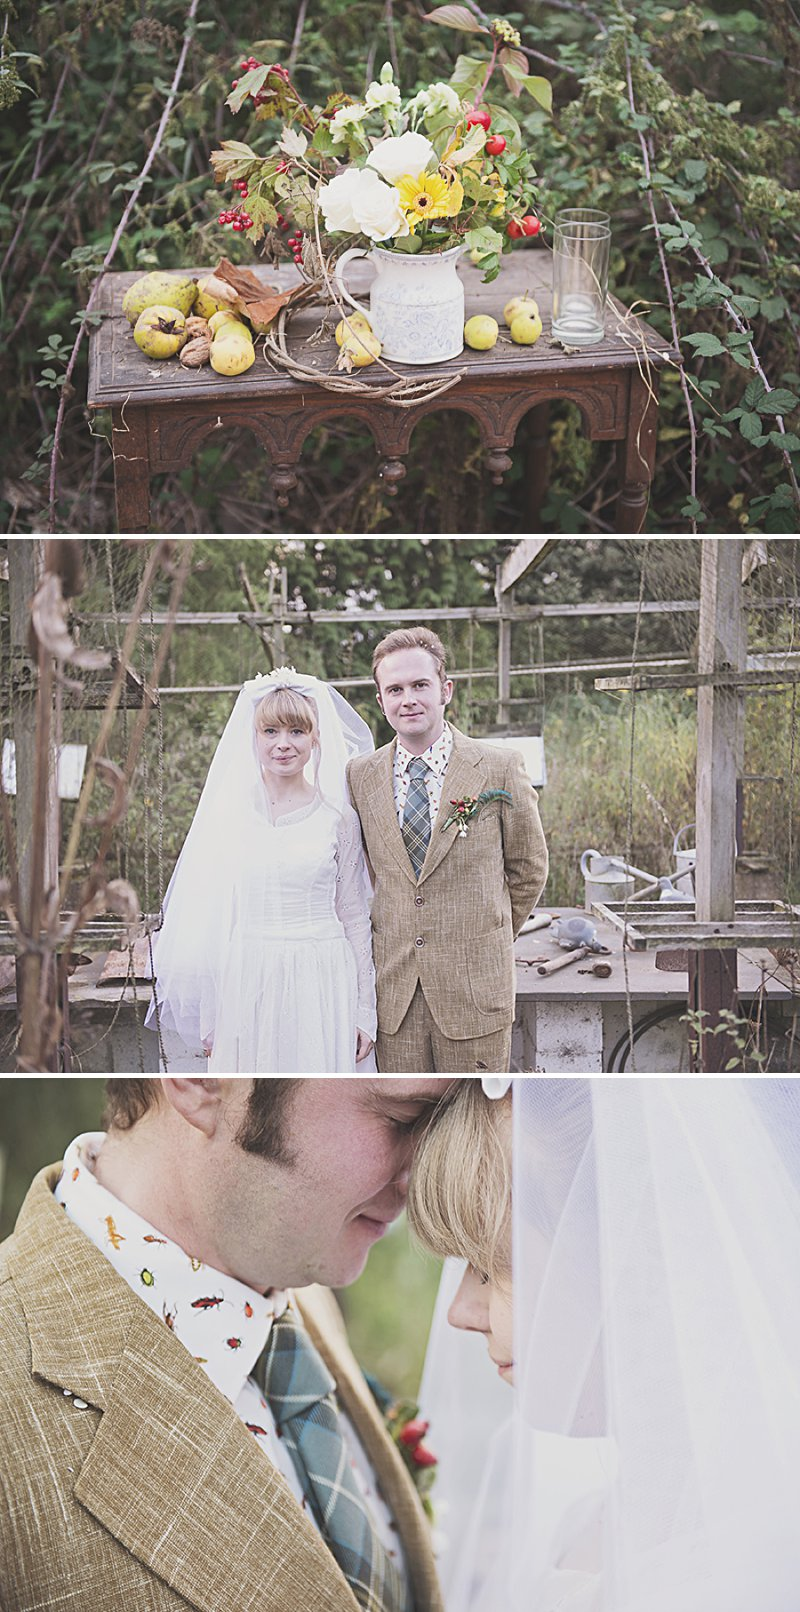 A DIY Wedding with homemade flowers, flamingo art, a polytunnel ceremony, apples, pumpkins, vintage dress and suit and vegetable bouquets.  Apple sharing ceremony at home with photography by Camilla Rosa_0013